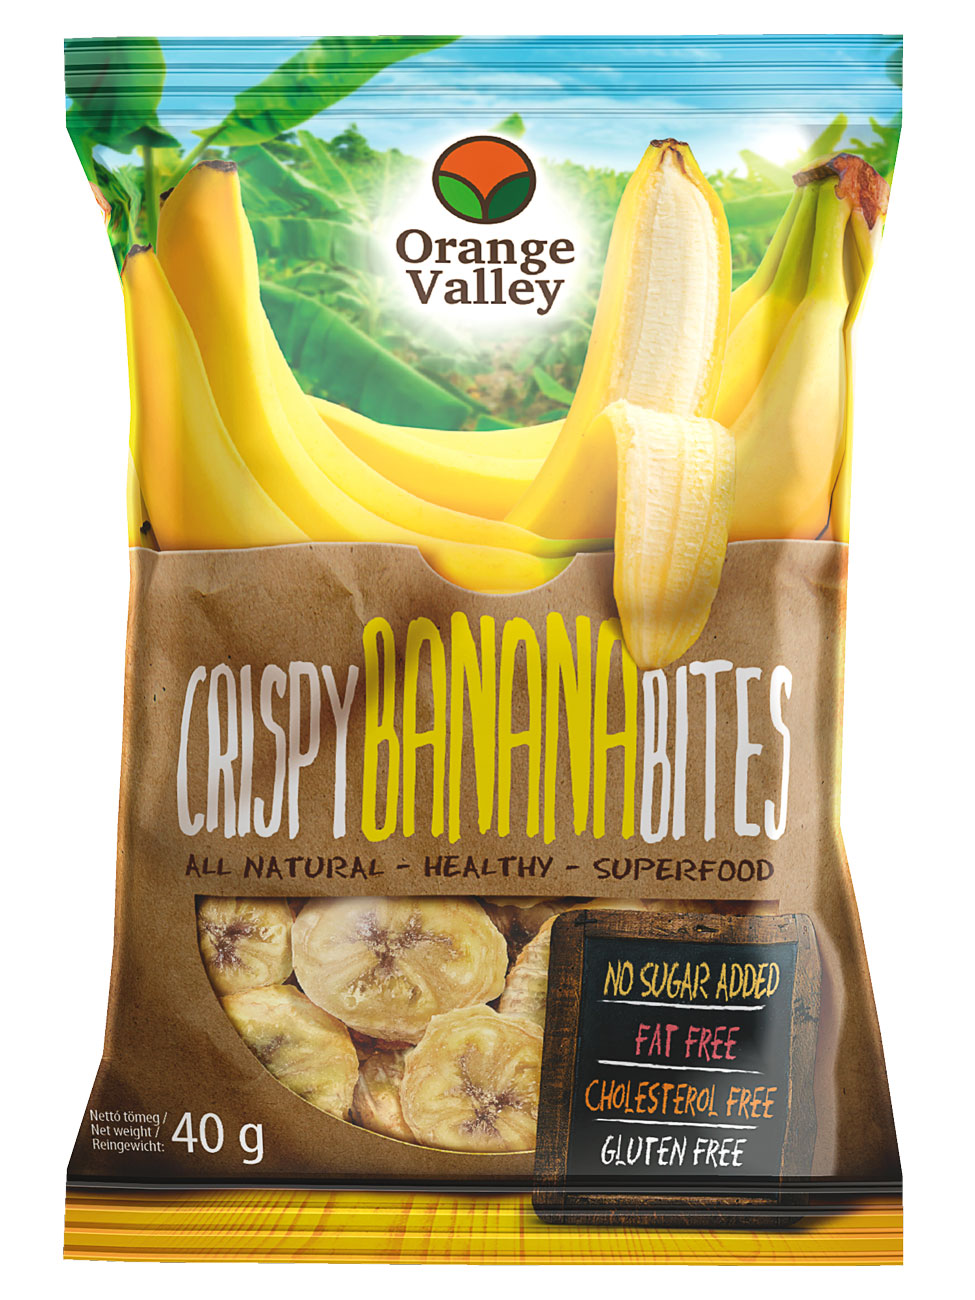 Orange Valley Banánchips